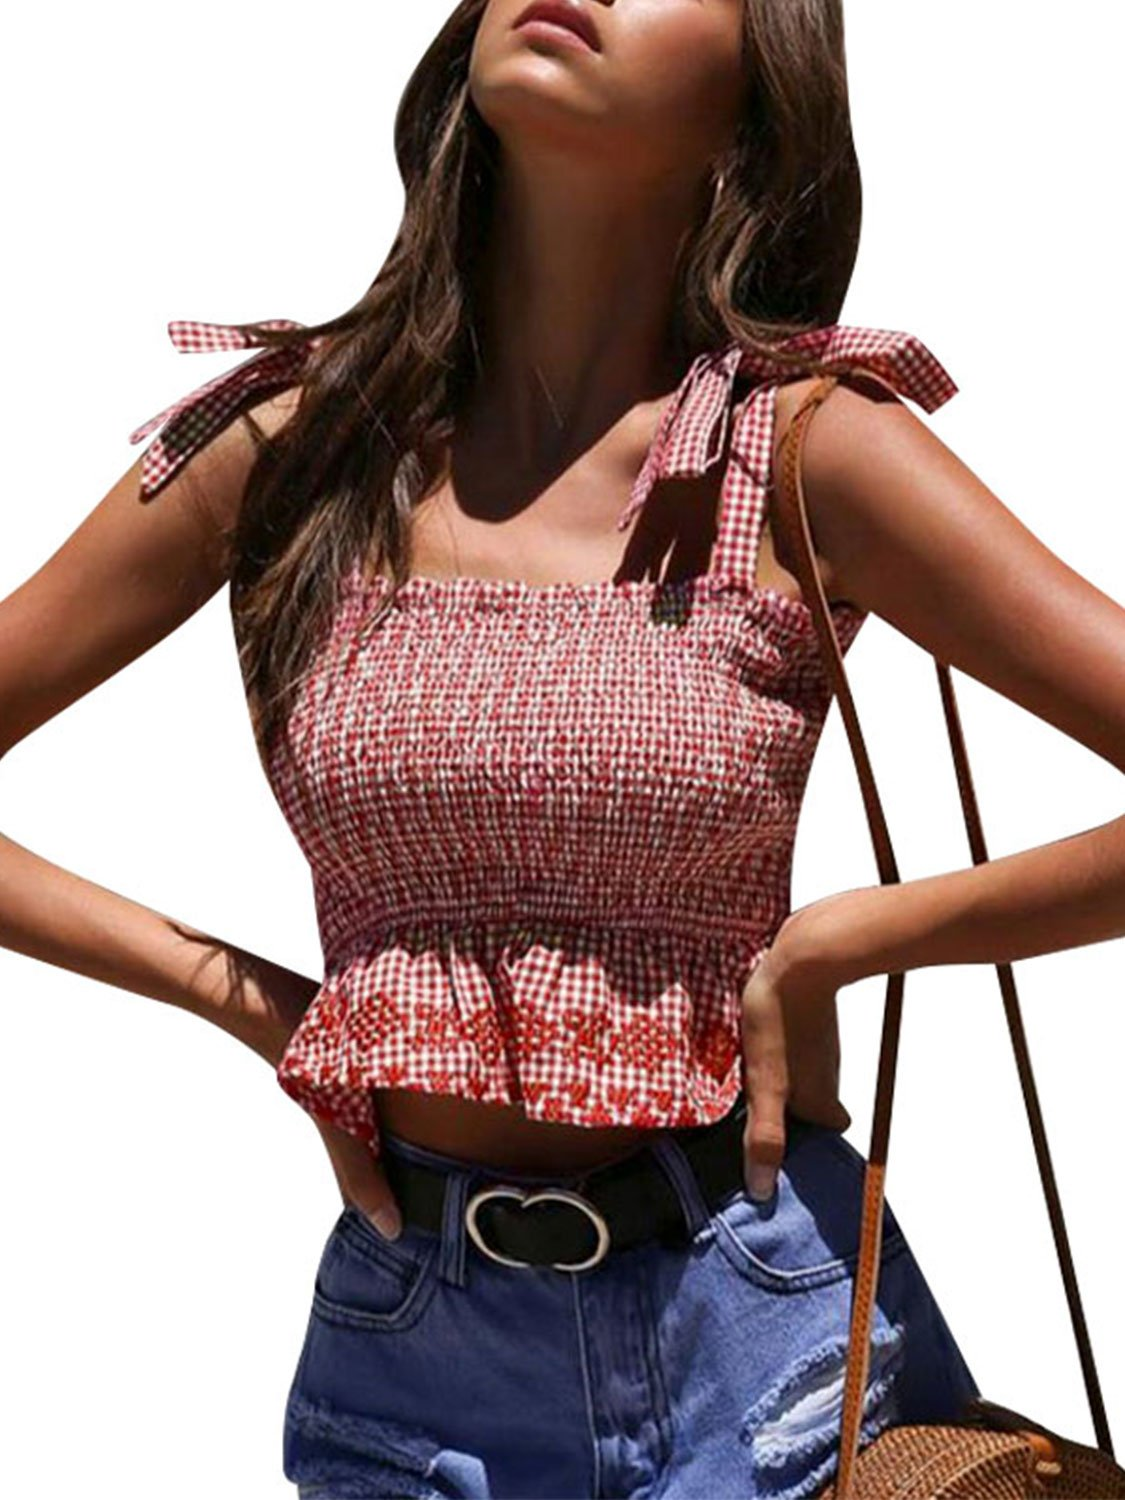 Glamaker Women's Summer Plaid Ruffle Smocked Crop Top Bowknot Strap Sleeveless Tank Cami Top Peplum Vest